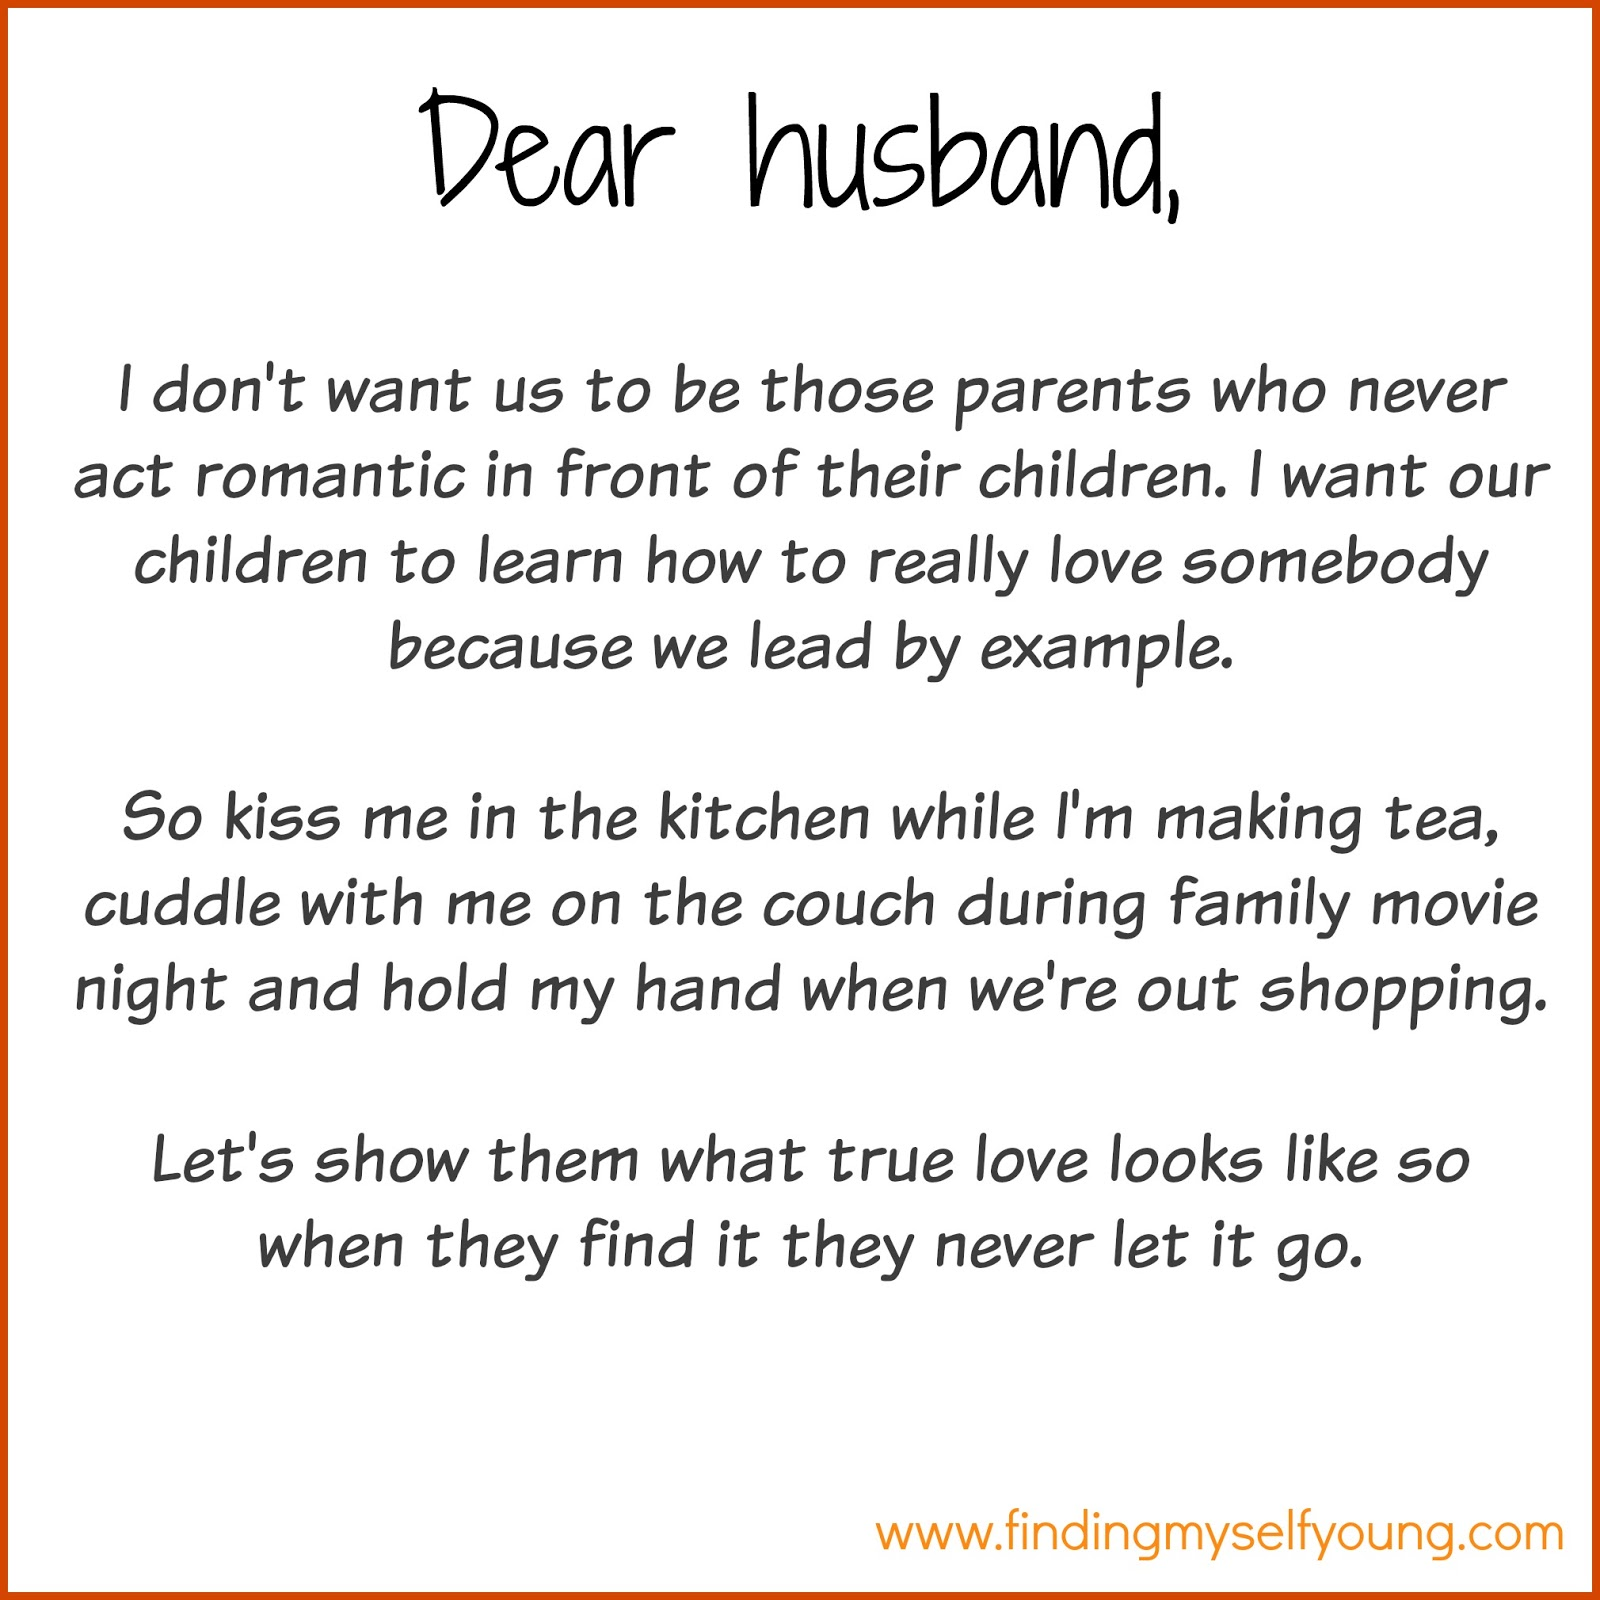 a letter to my husband who wants a divorce finding myself december 2015 29563 | dear husband